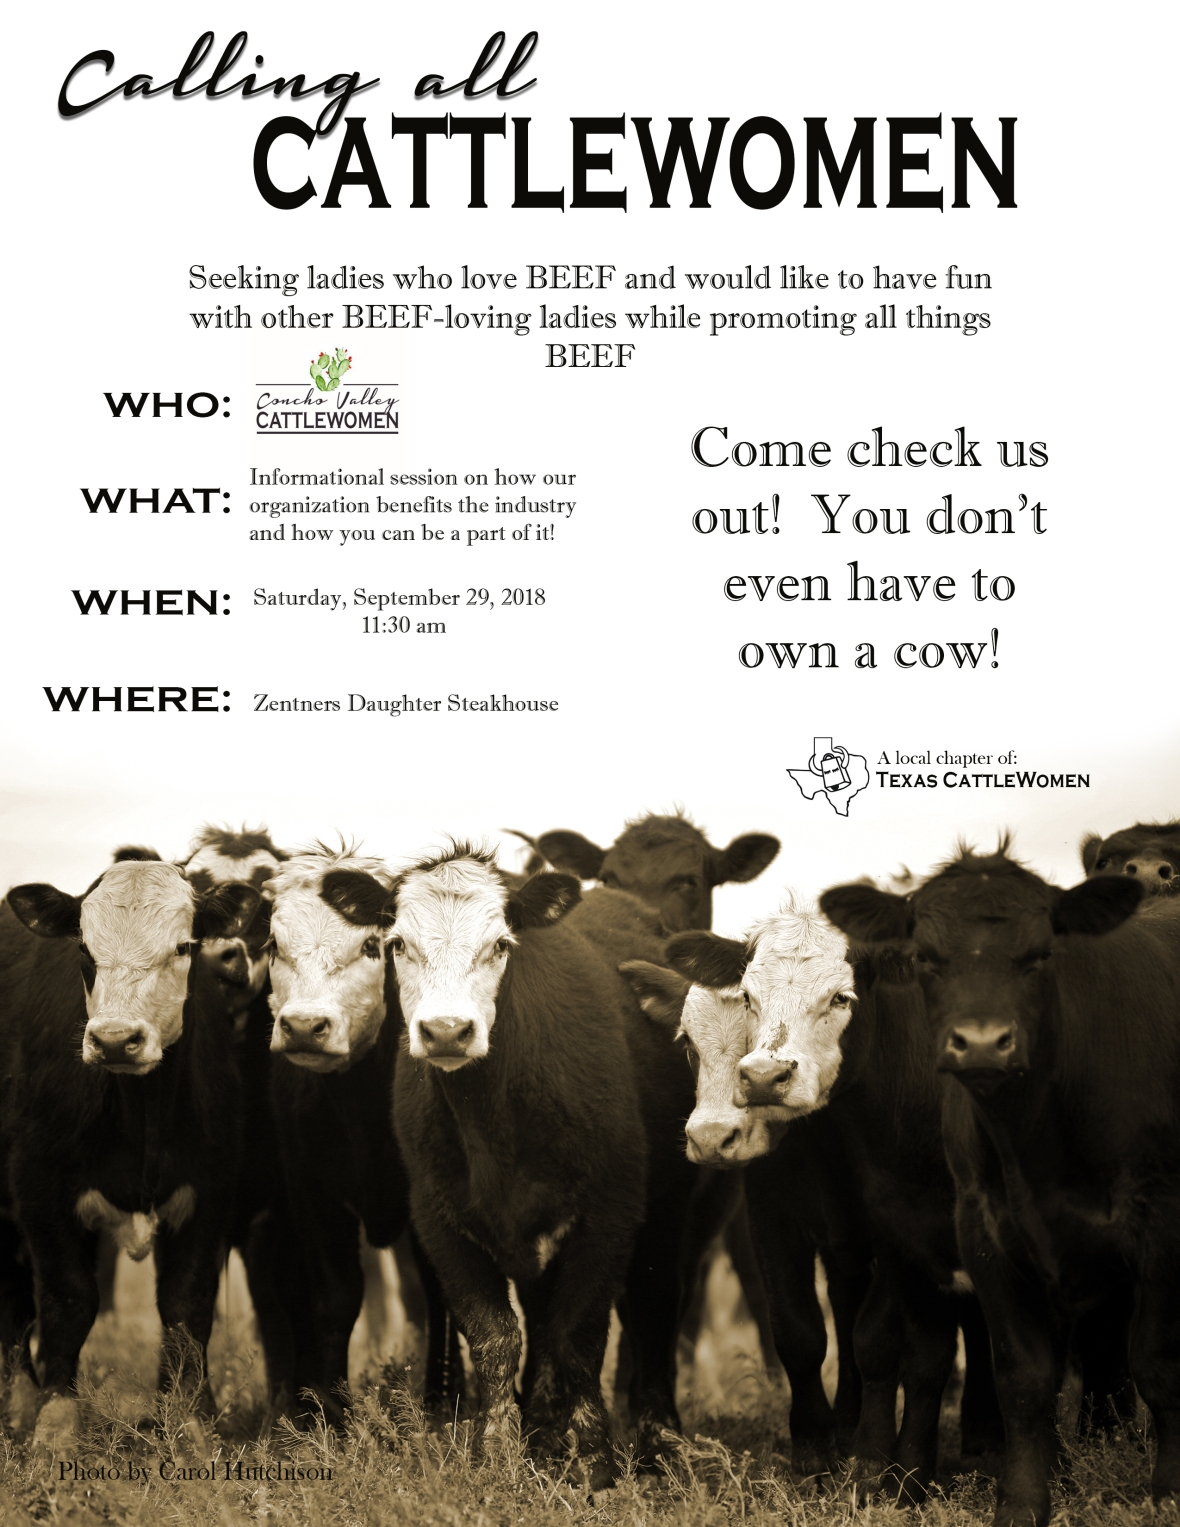 ConchoValley CattleWomen